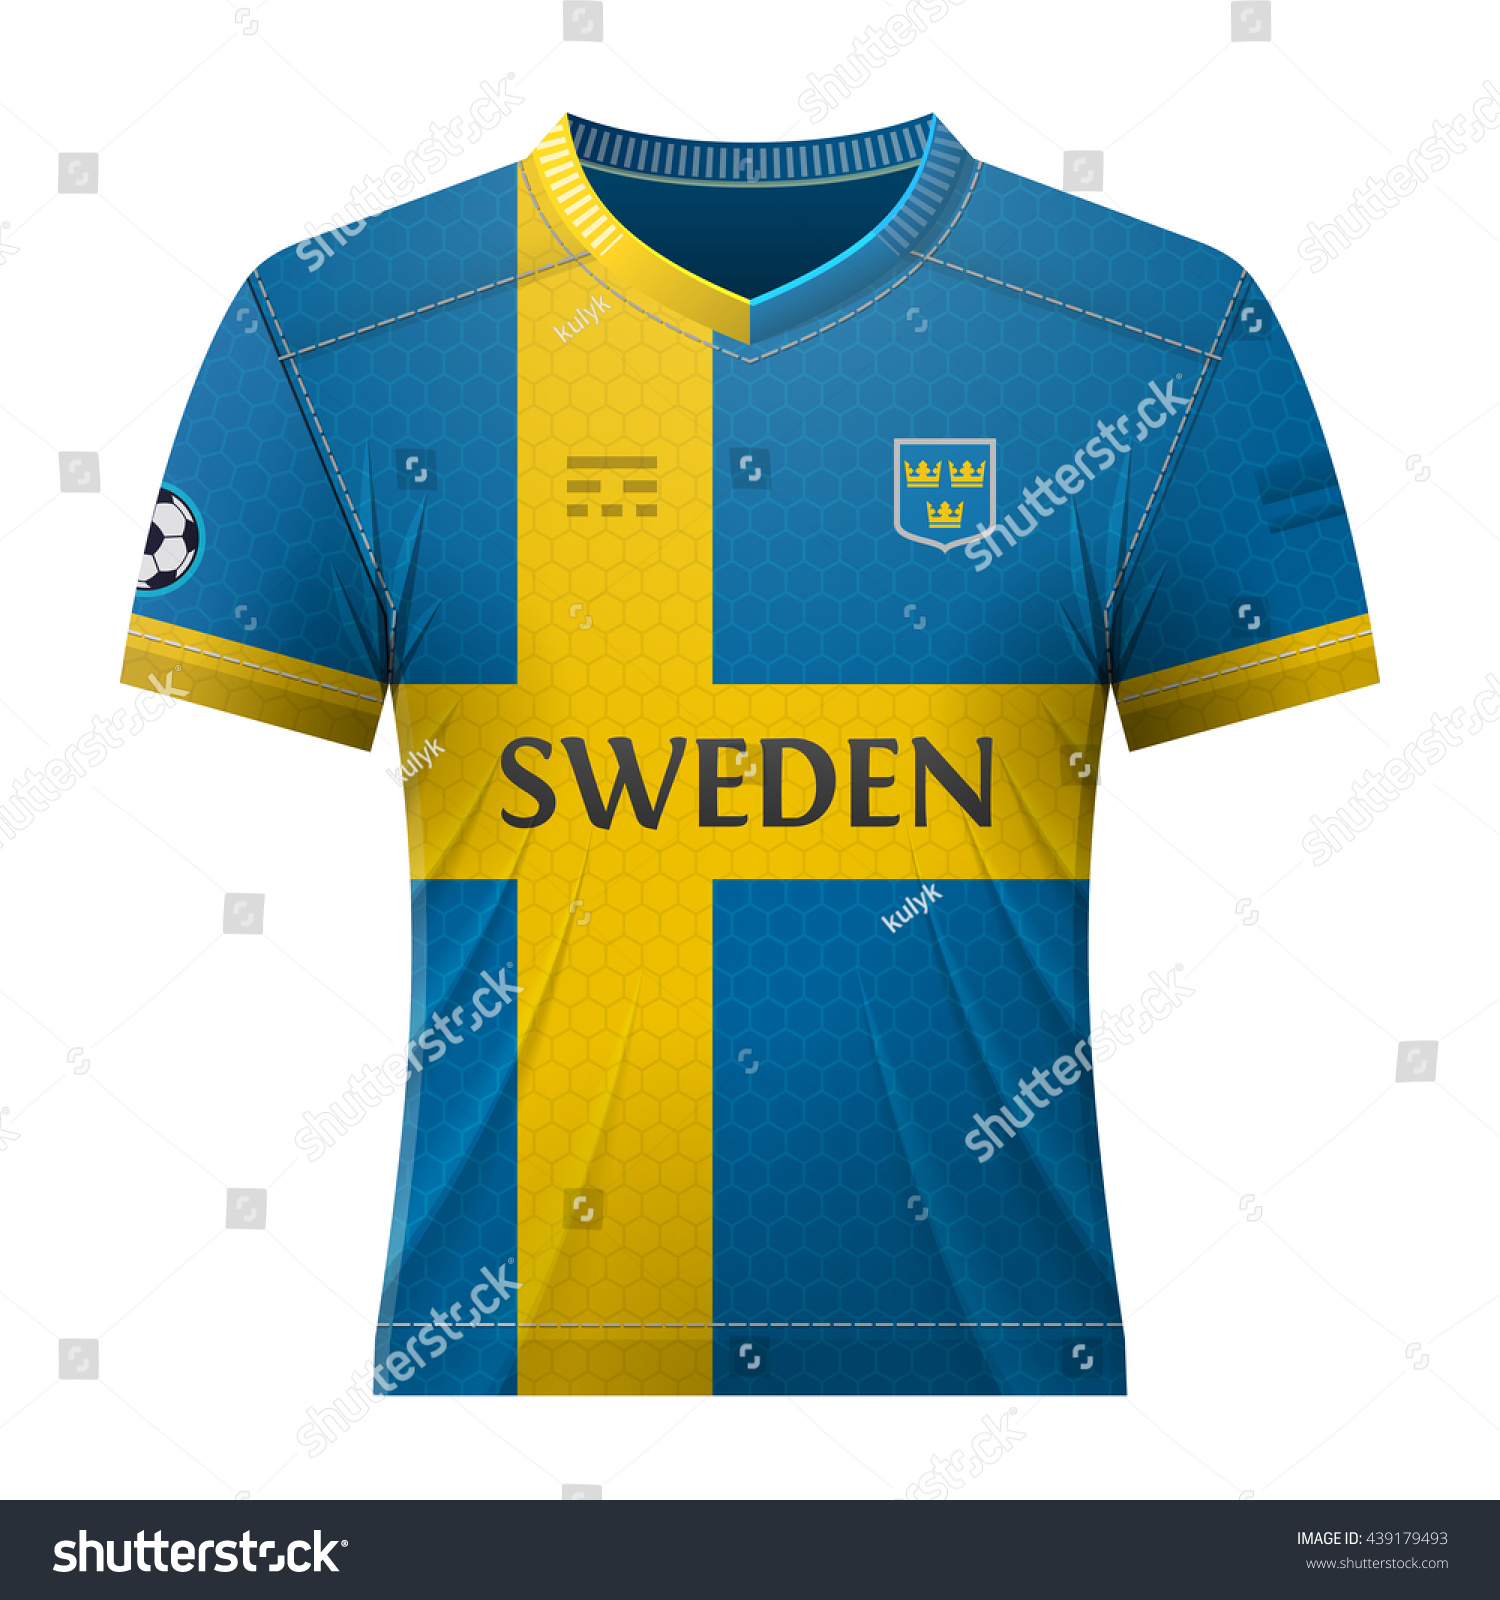 2b0023020 ... soccer shirt in colors of swedish flag. national jersey for football  team of sweden.